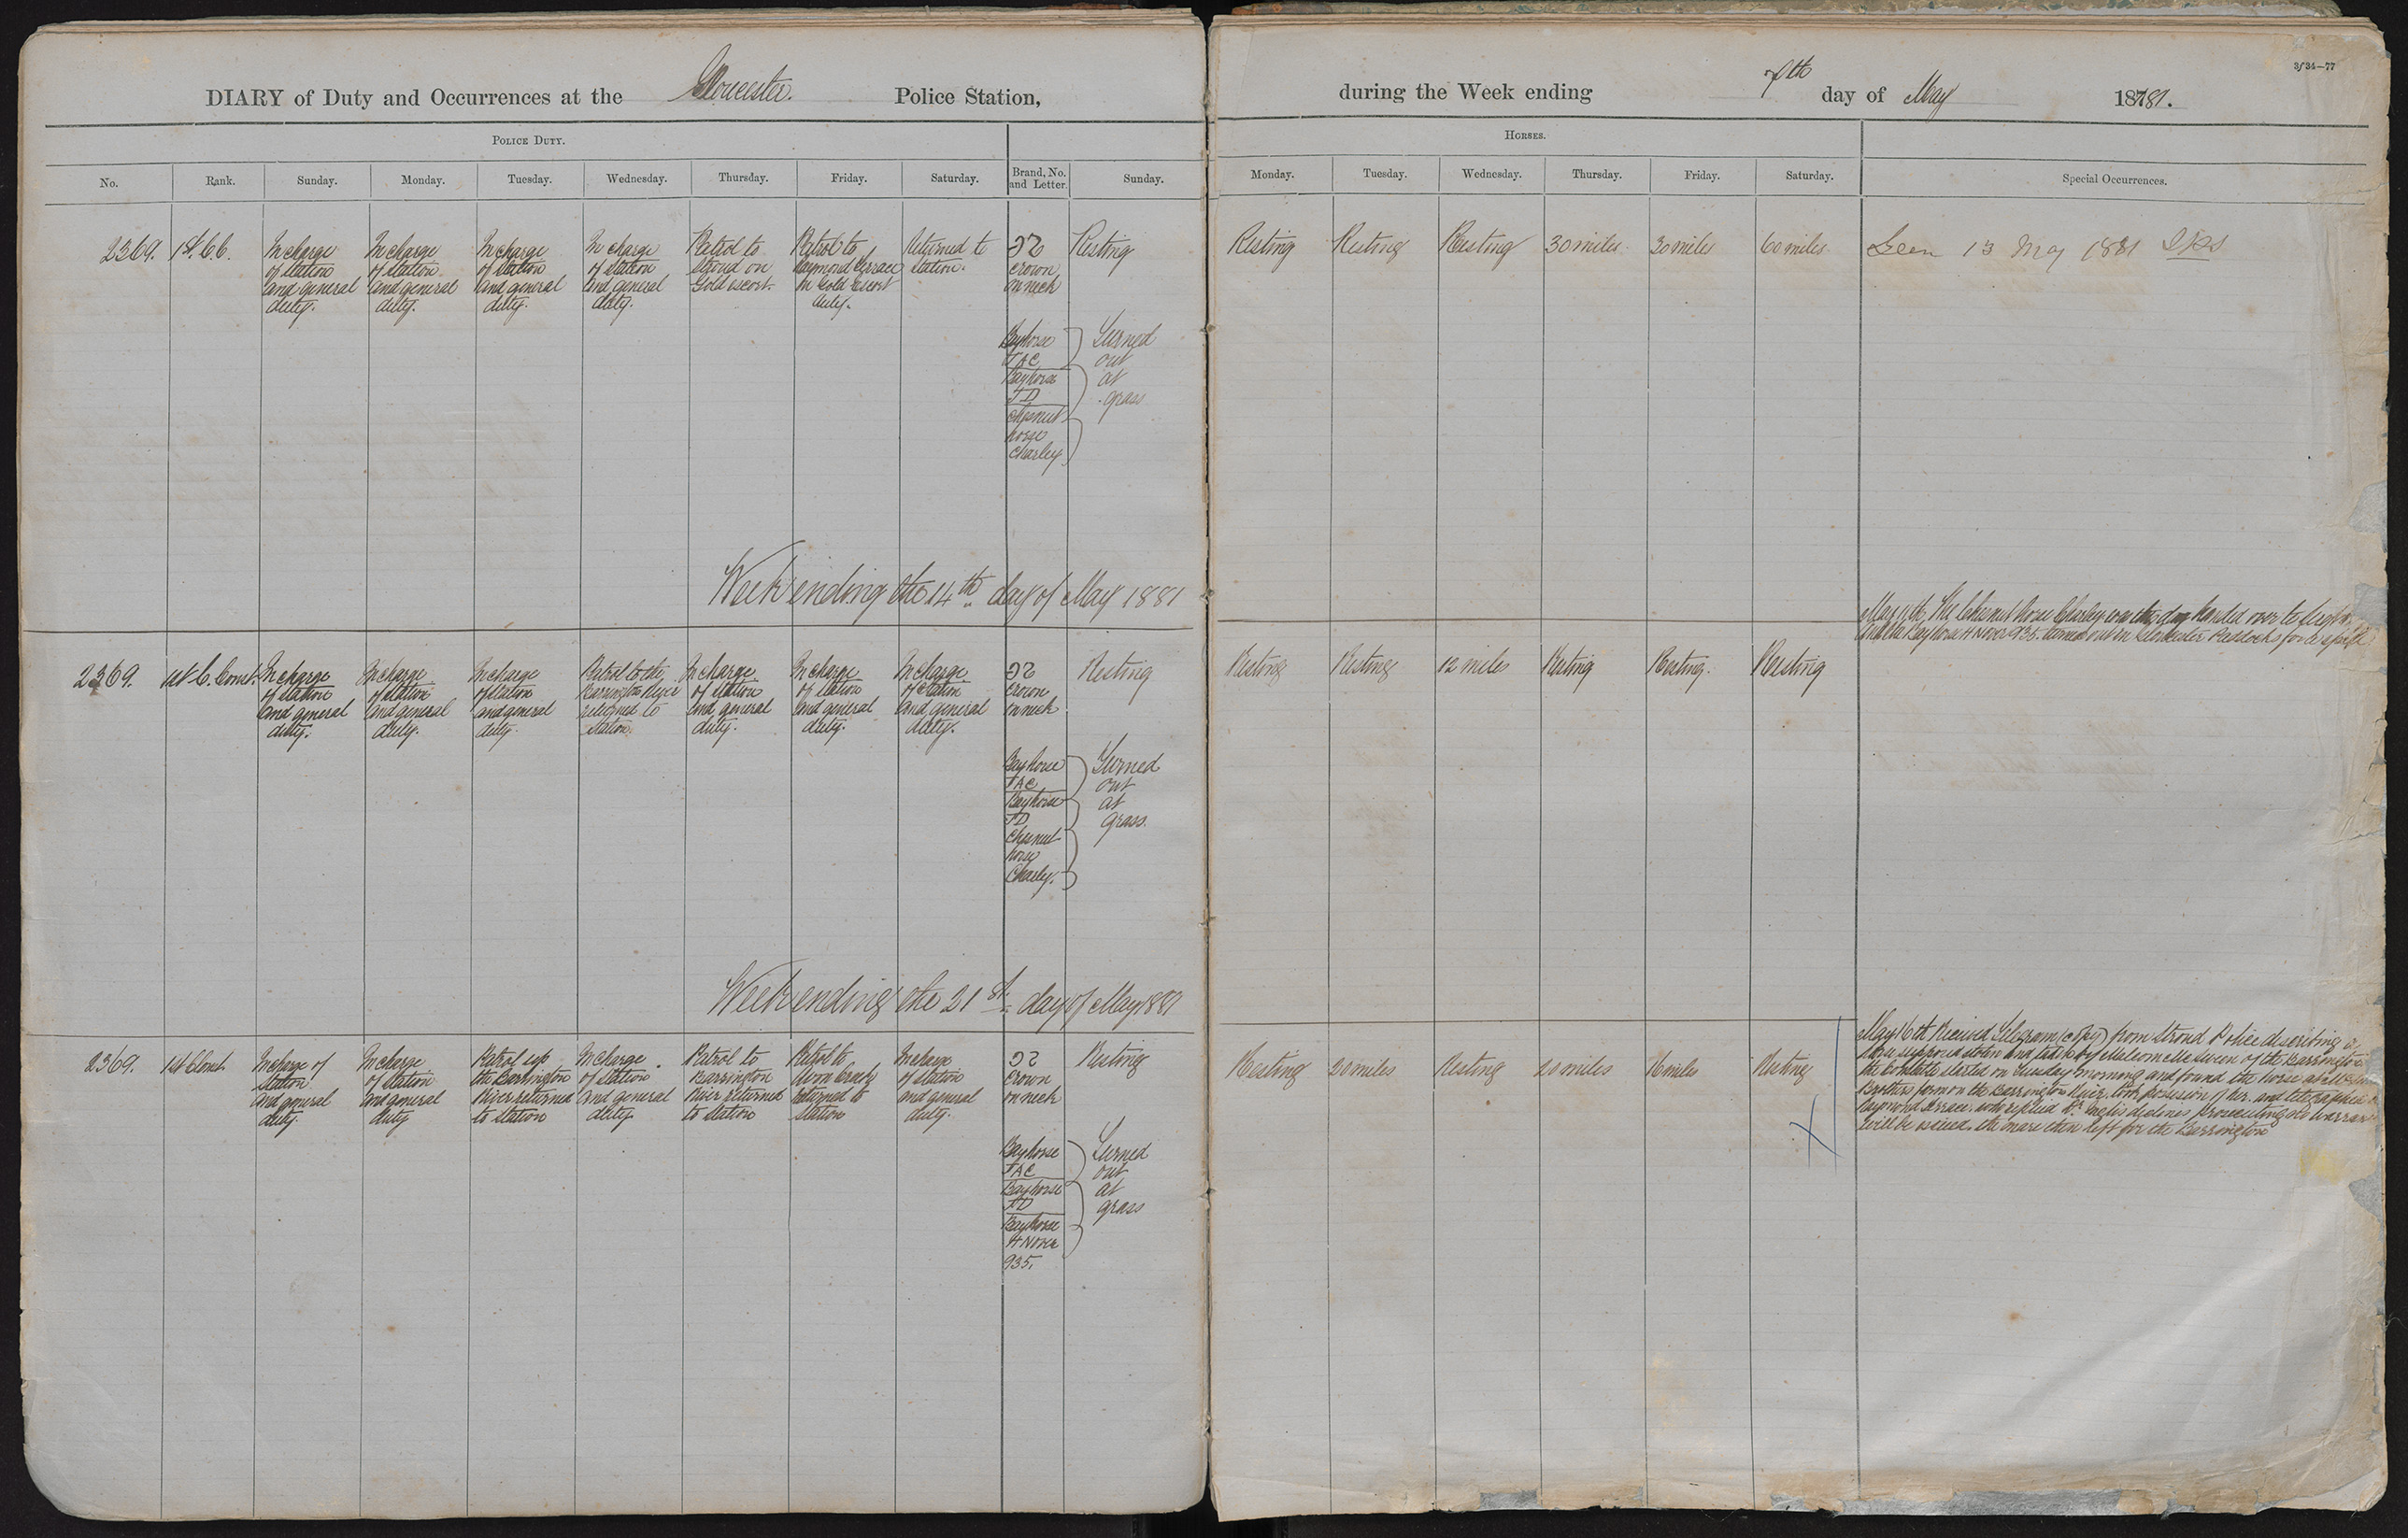 Diary of duty and occurrences at the Gloucester Police Station during the week ending the 7th day of May 1881